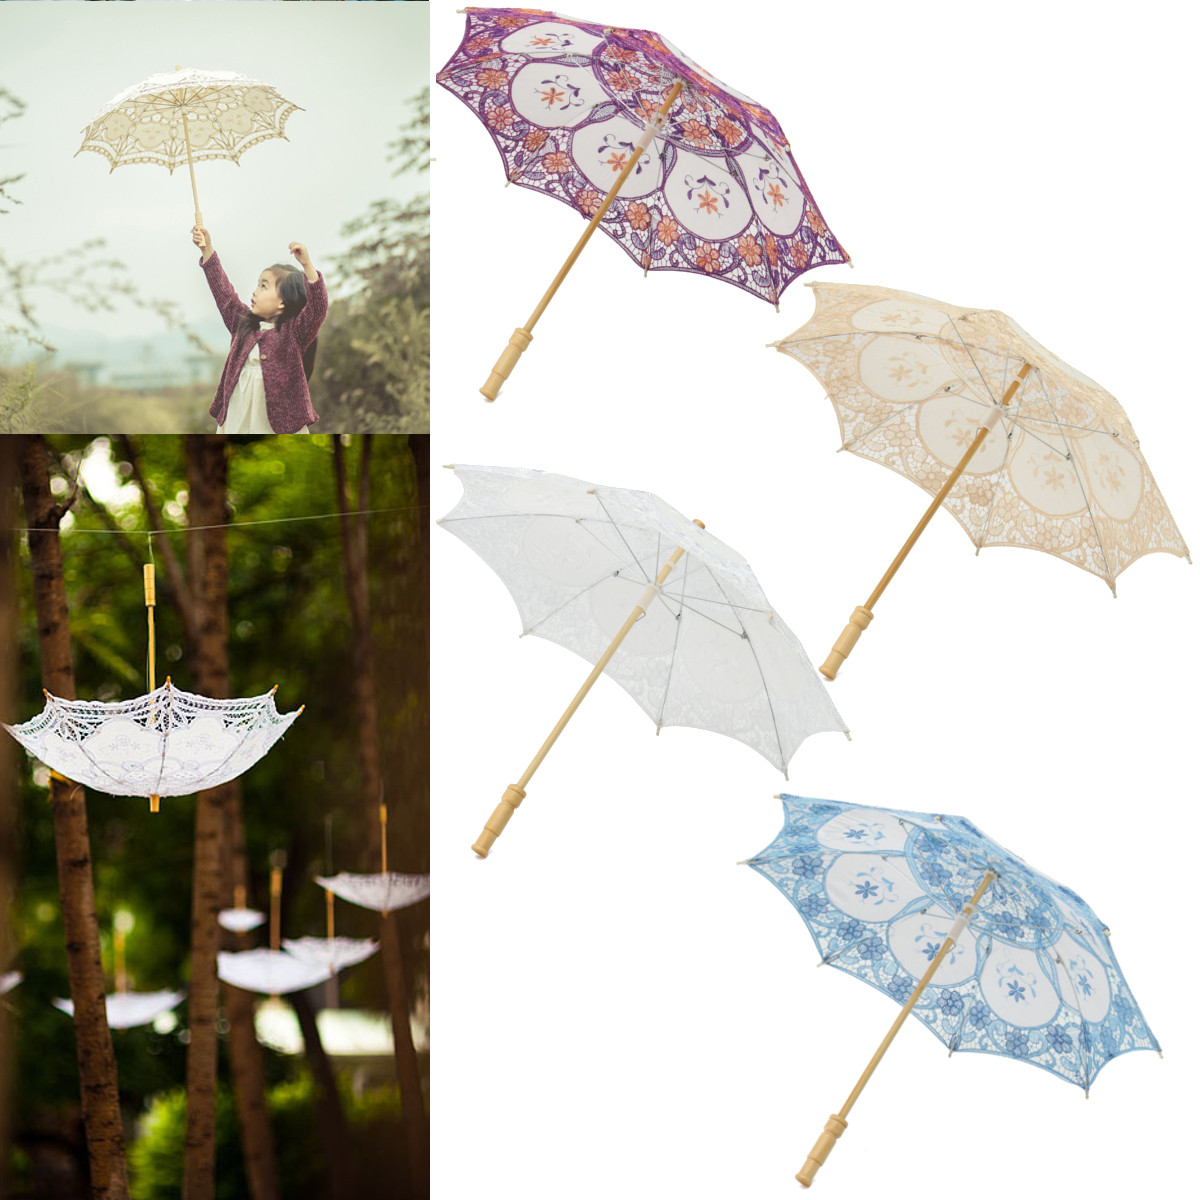 52CM Lace Elegant Embroidered Parasol Umbrella For Bridal Wedding Party Prop Decoration